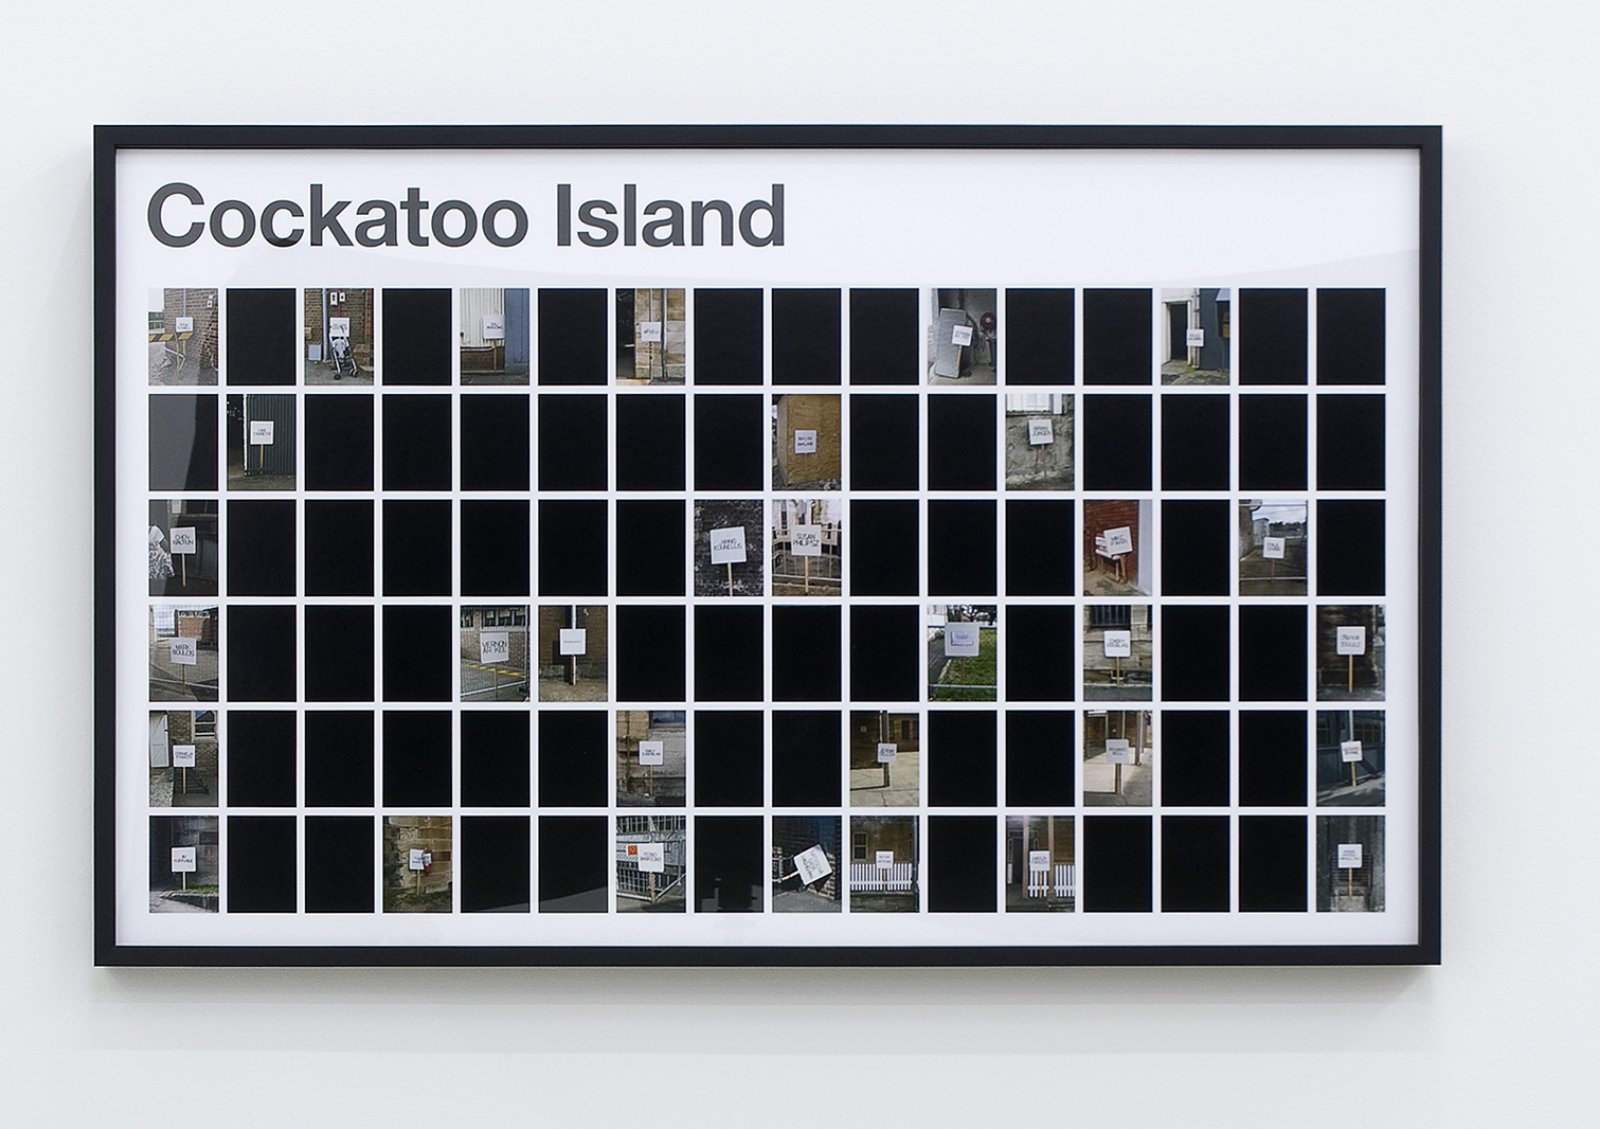 Ron Terada, Cockatoo Island, 2009, pigment ink print on archival paper, 26 x 42 in. (66 x 107 cm)